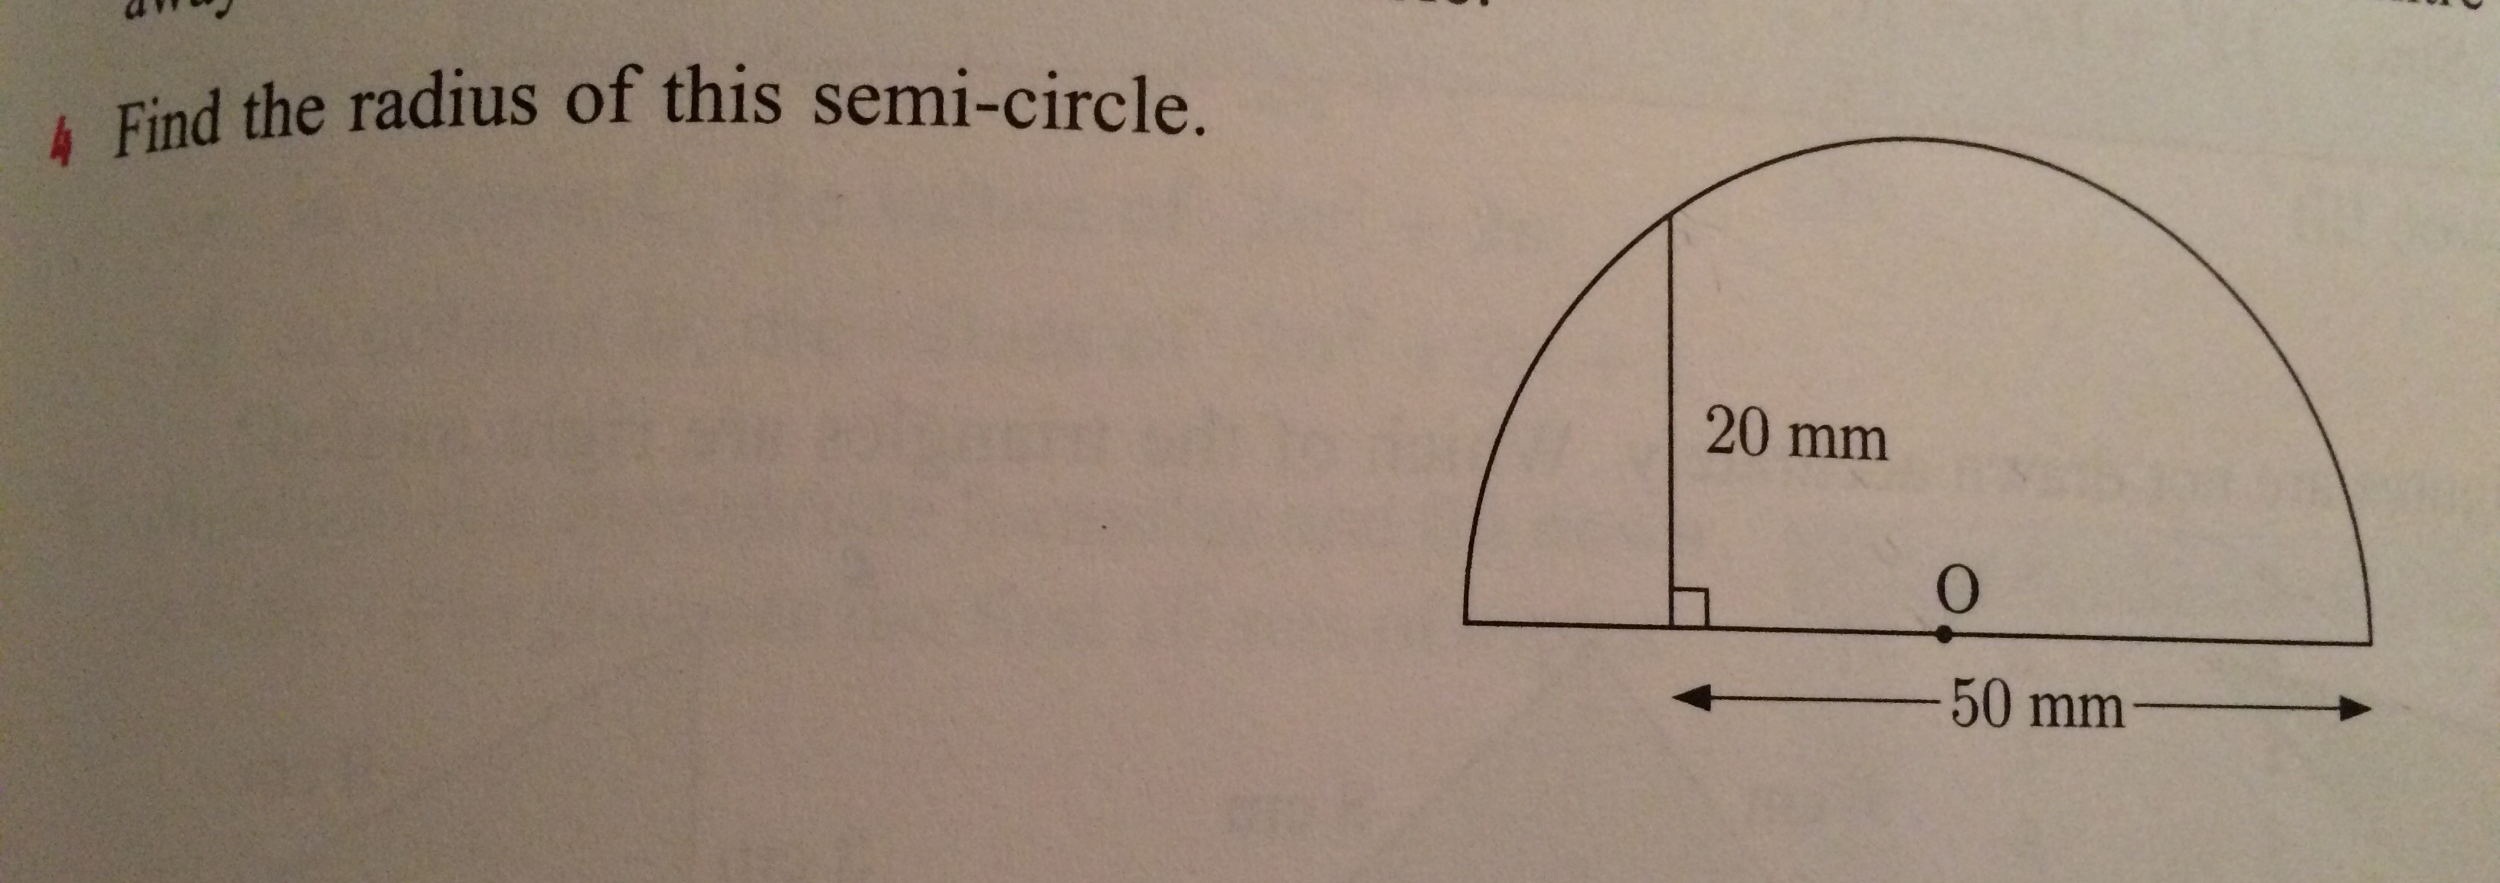 4 find the radius of this semi circle chegg find the radius of this semi circle ccuart Gallery